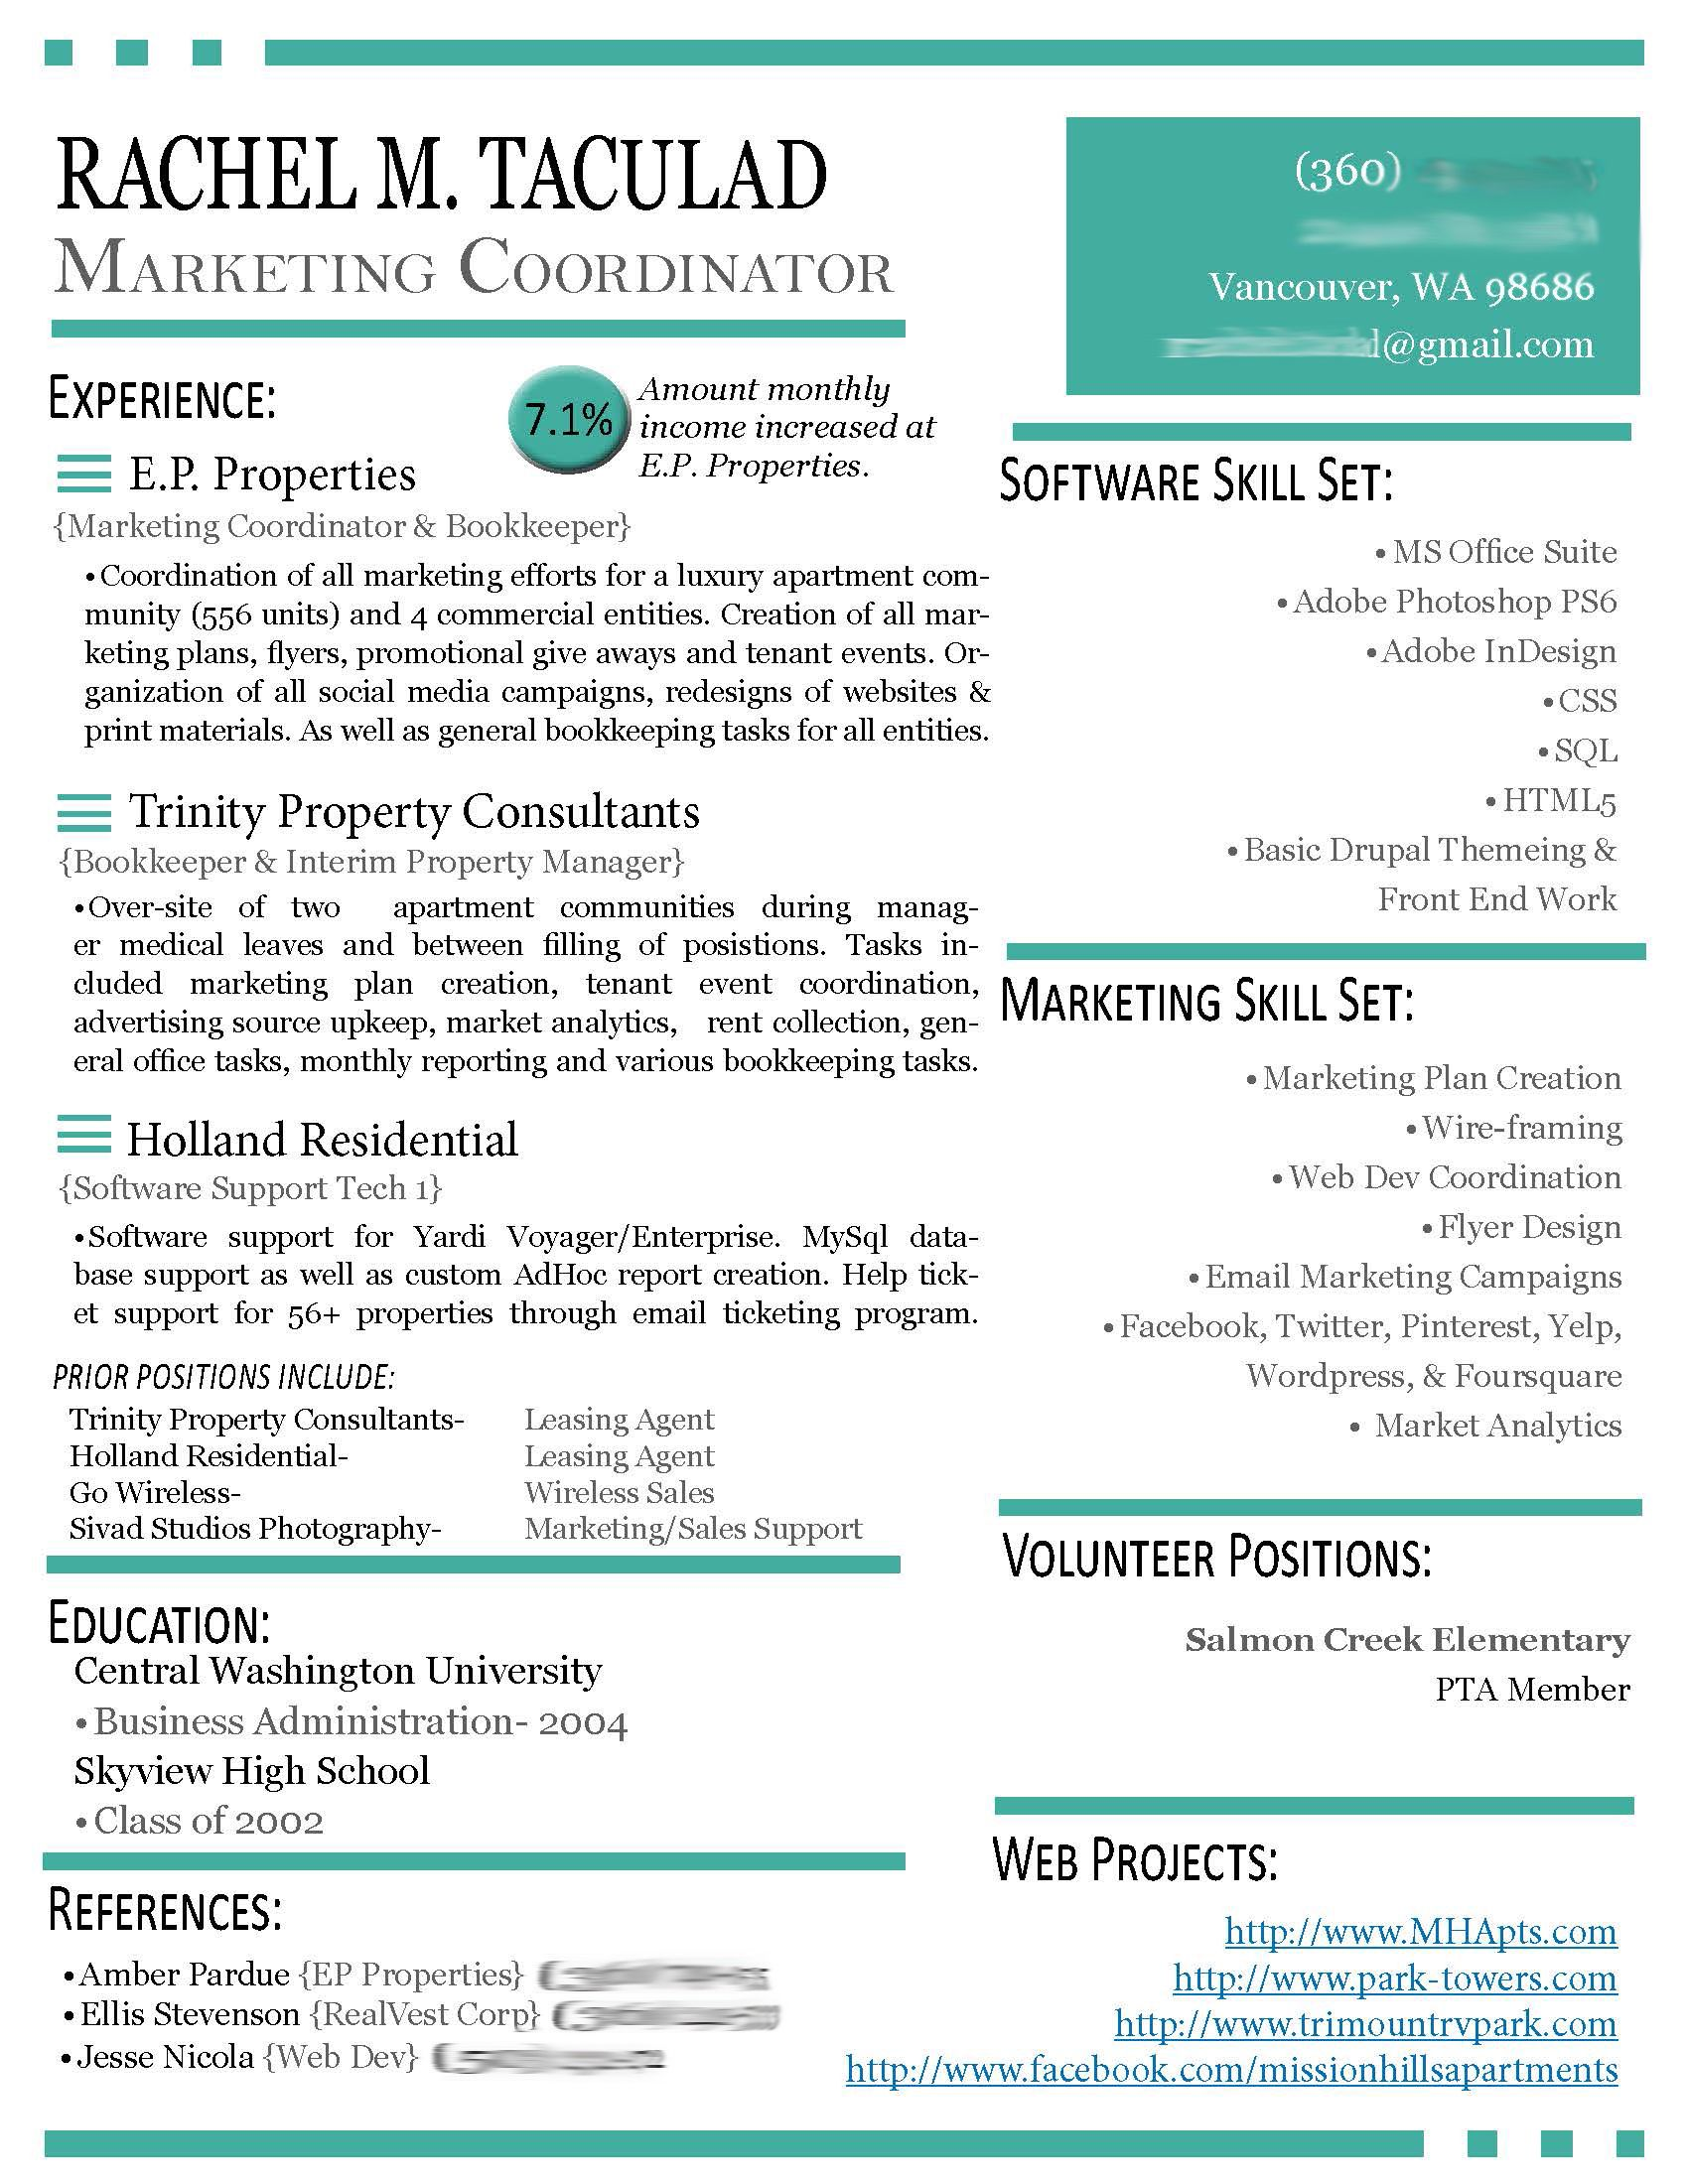 Opposenewapstandardsus  Nice  Images About Work Stuff On Pinterest  Resume Professional  With Luxury  Images About Work Stuff On Pinterest  Resume Professional Resume Template And Resume Templates With Delightful Personal Summary Resume Also Cashier Duties For Resume In Addition How To Write The Best Resume And Effective Resumes As Well As Is My Perfect Resume Free Additionally Retail Experience Resume From Pinterestcom With Opposenewapstandardsus  Luxury  Images About Work Stuff On Pinterest  Resume Professional  With Delightful  Images About Work Stuff On Pinterest  Resume Professional Resume Template And Resume Templates And Nice Personal Summary Resume Also Cashier Duties For Resume In Addition How To Write The Best Resume From Pinterestcom